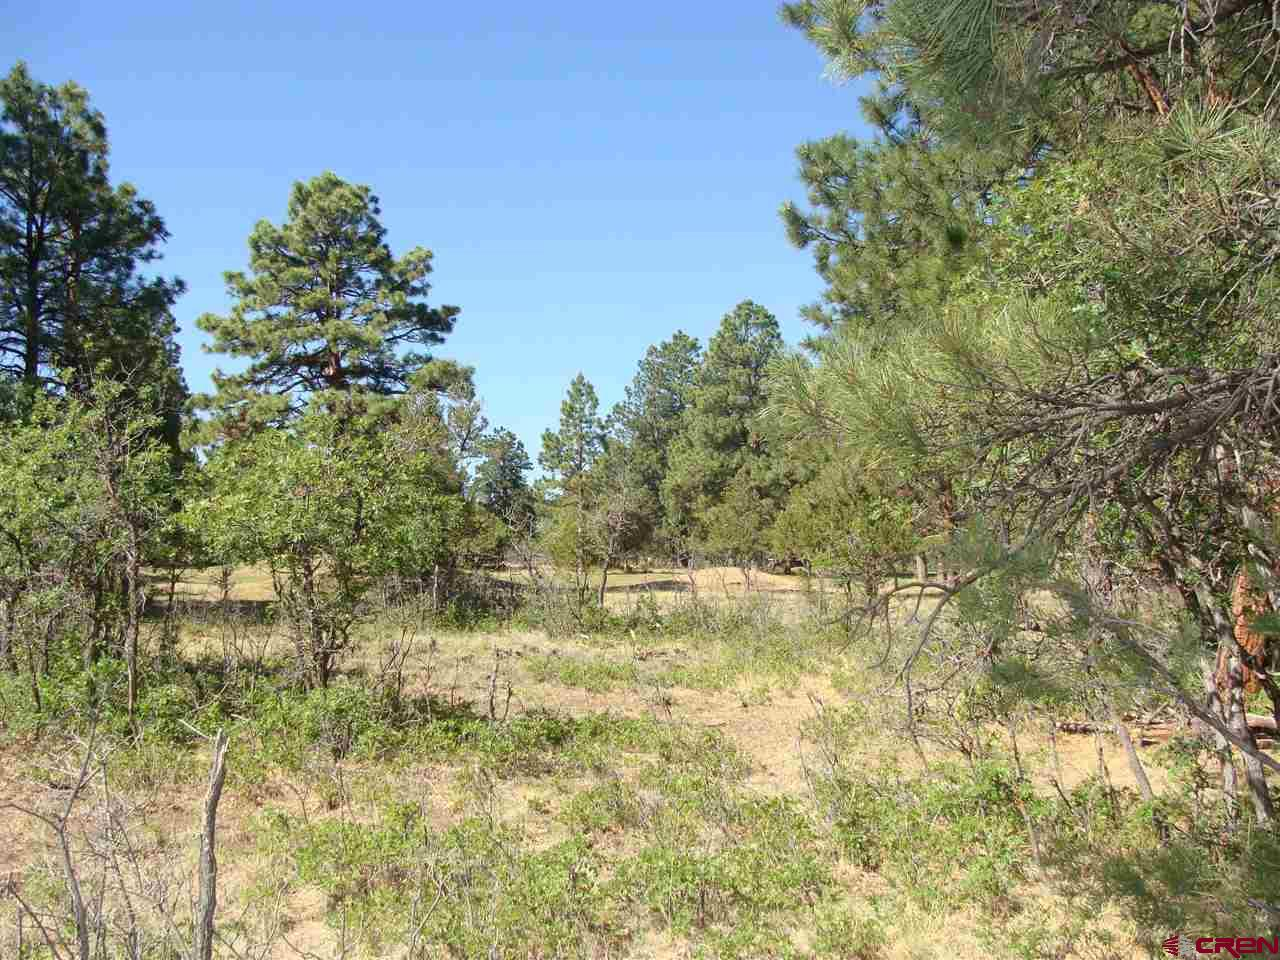 Golf course lot ready for your dream home!  Nicely treed with a lovely building site.  Almost a full acre with underground utilities to the lot line.  Paved roads in the subdivision are beautifully maintained.  One of the best lots available at this price - don't miss! Award winning Divide Ranch & Club Golf course.